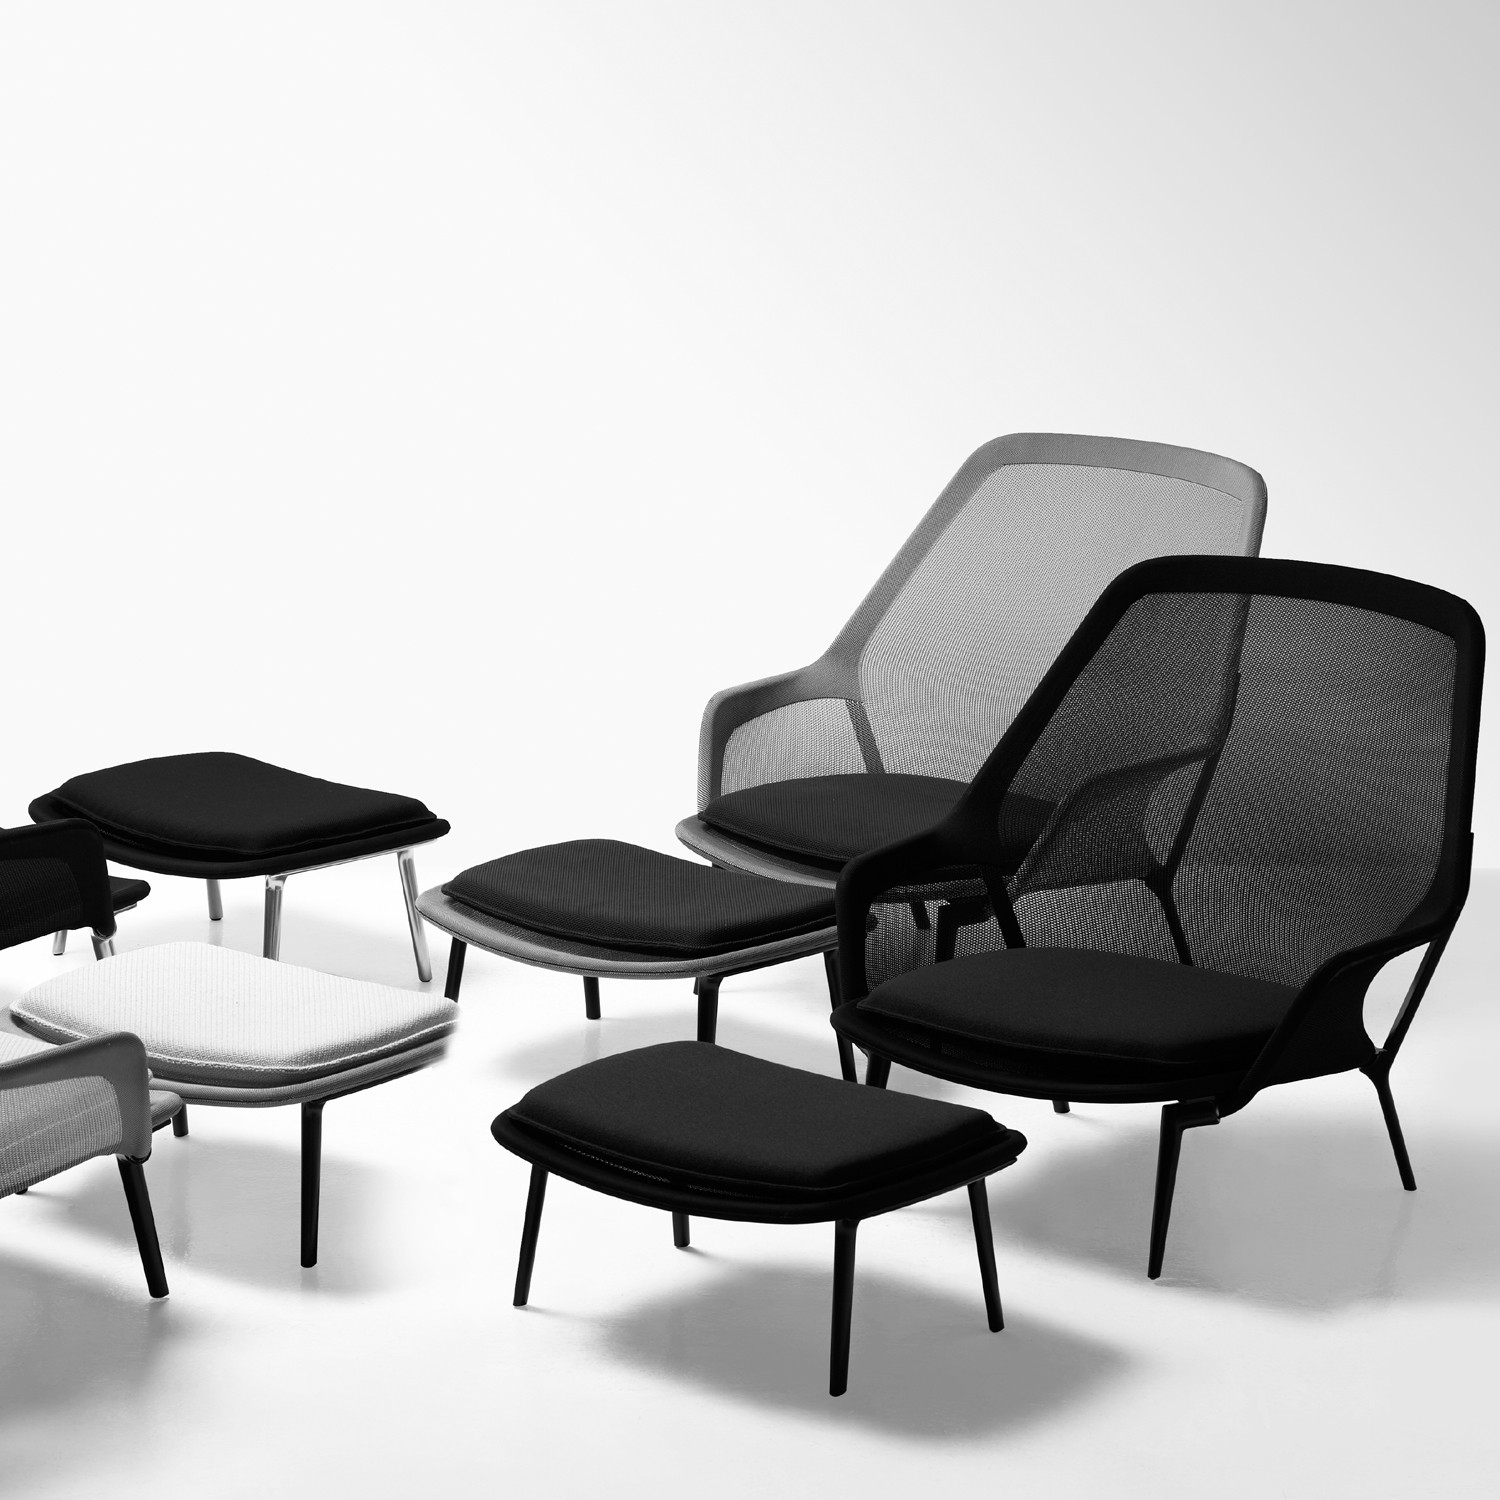 slow chair ottoman vitra slow seating apres furniture. Black Bedroom Furniture Sets. Home Design Ideas